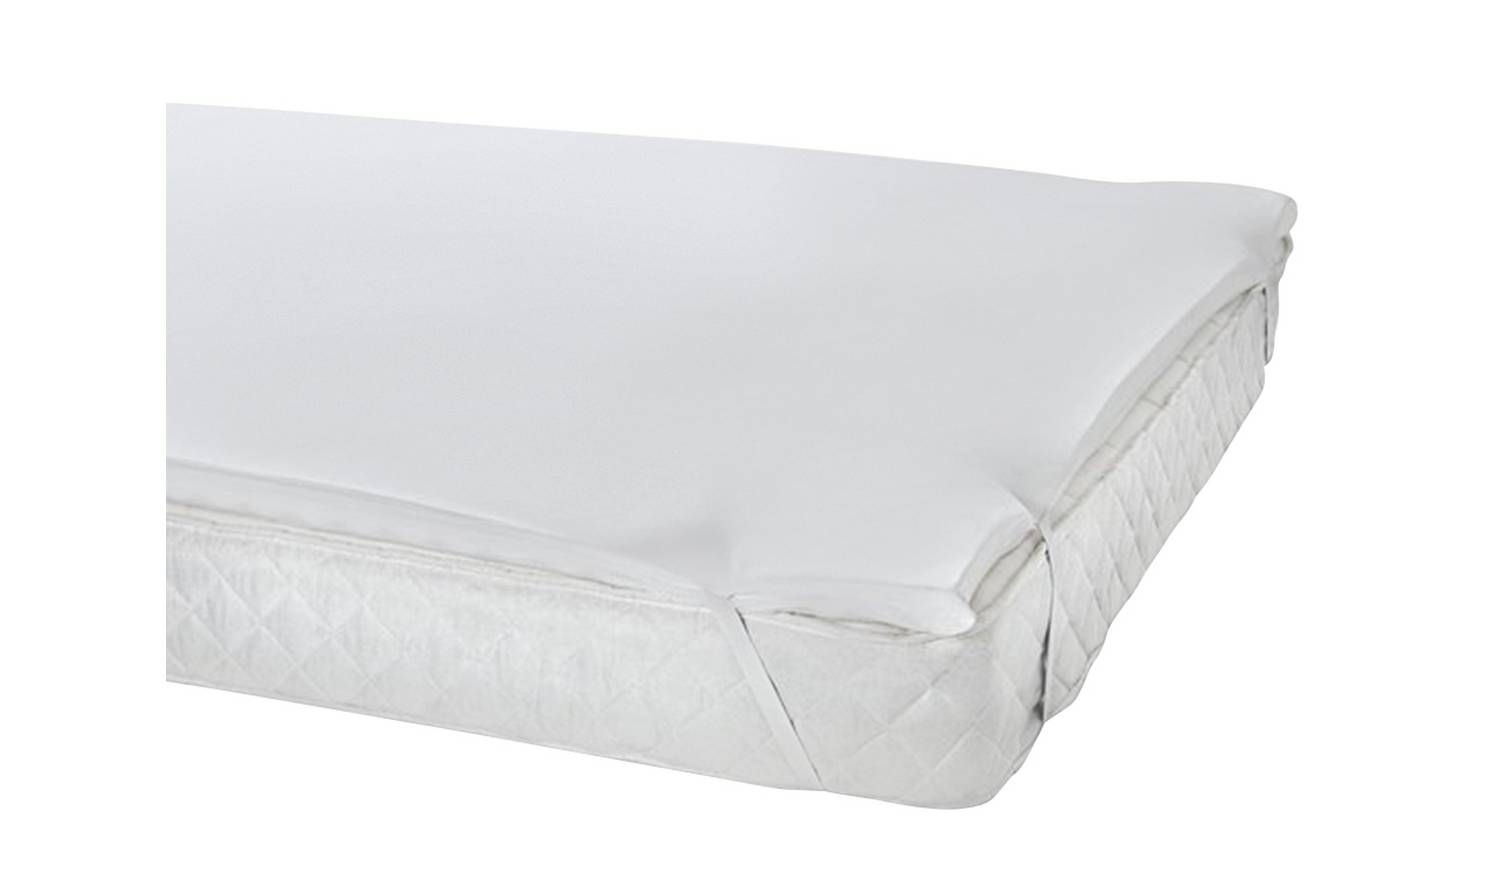 Argos Mattress Topper King Size Buy Argos Home 5cm Memory Foam Mattress Topper Double Mattress